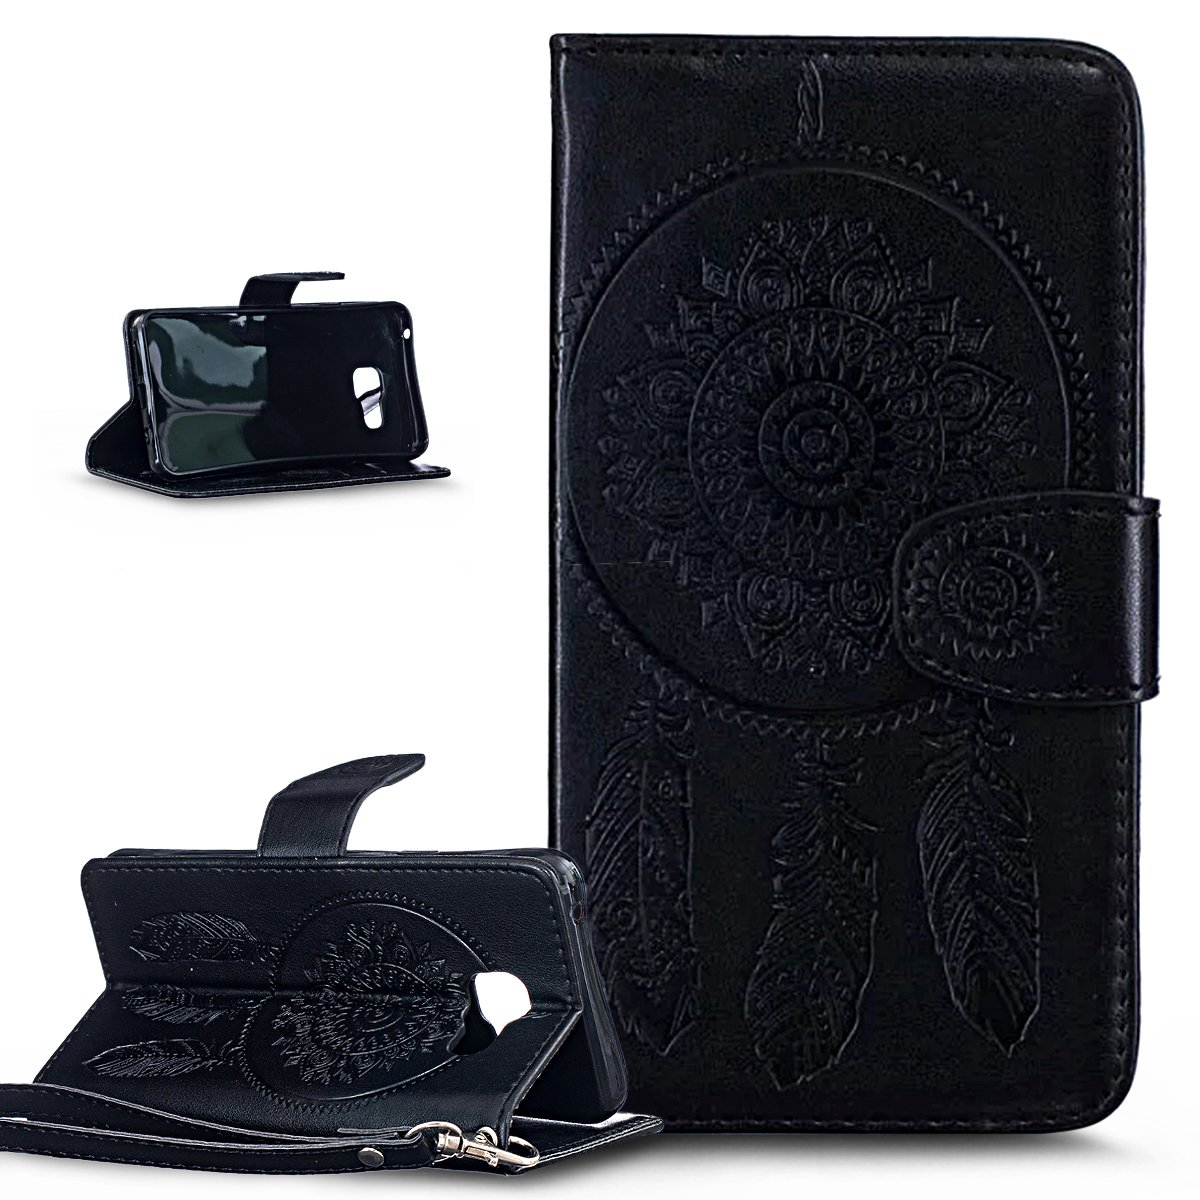 Galaxy A3 2016 Case, Wallet Case for Galaxy A3 2016, ikasus Embossing Dream Catcher Ethnic Tribal Feather Campanula PU Leather Fold Wallet Pouch Case Premium Leather Wallet Flip Stand Credit Card Holders Case Cover for Samsung Galaxy A3 (2016) A310 (4.7'),